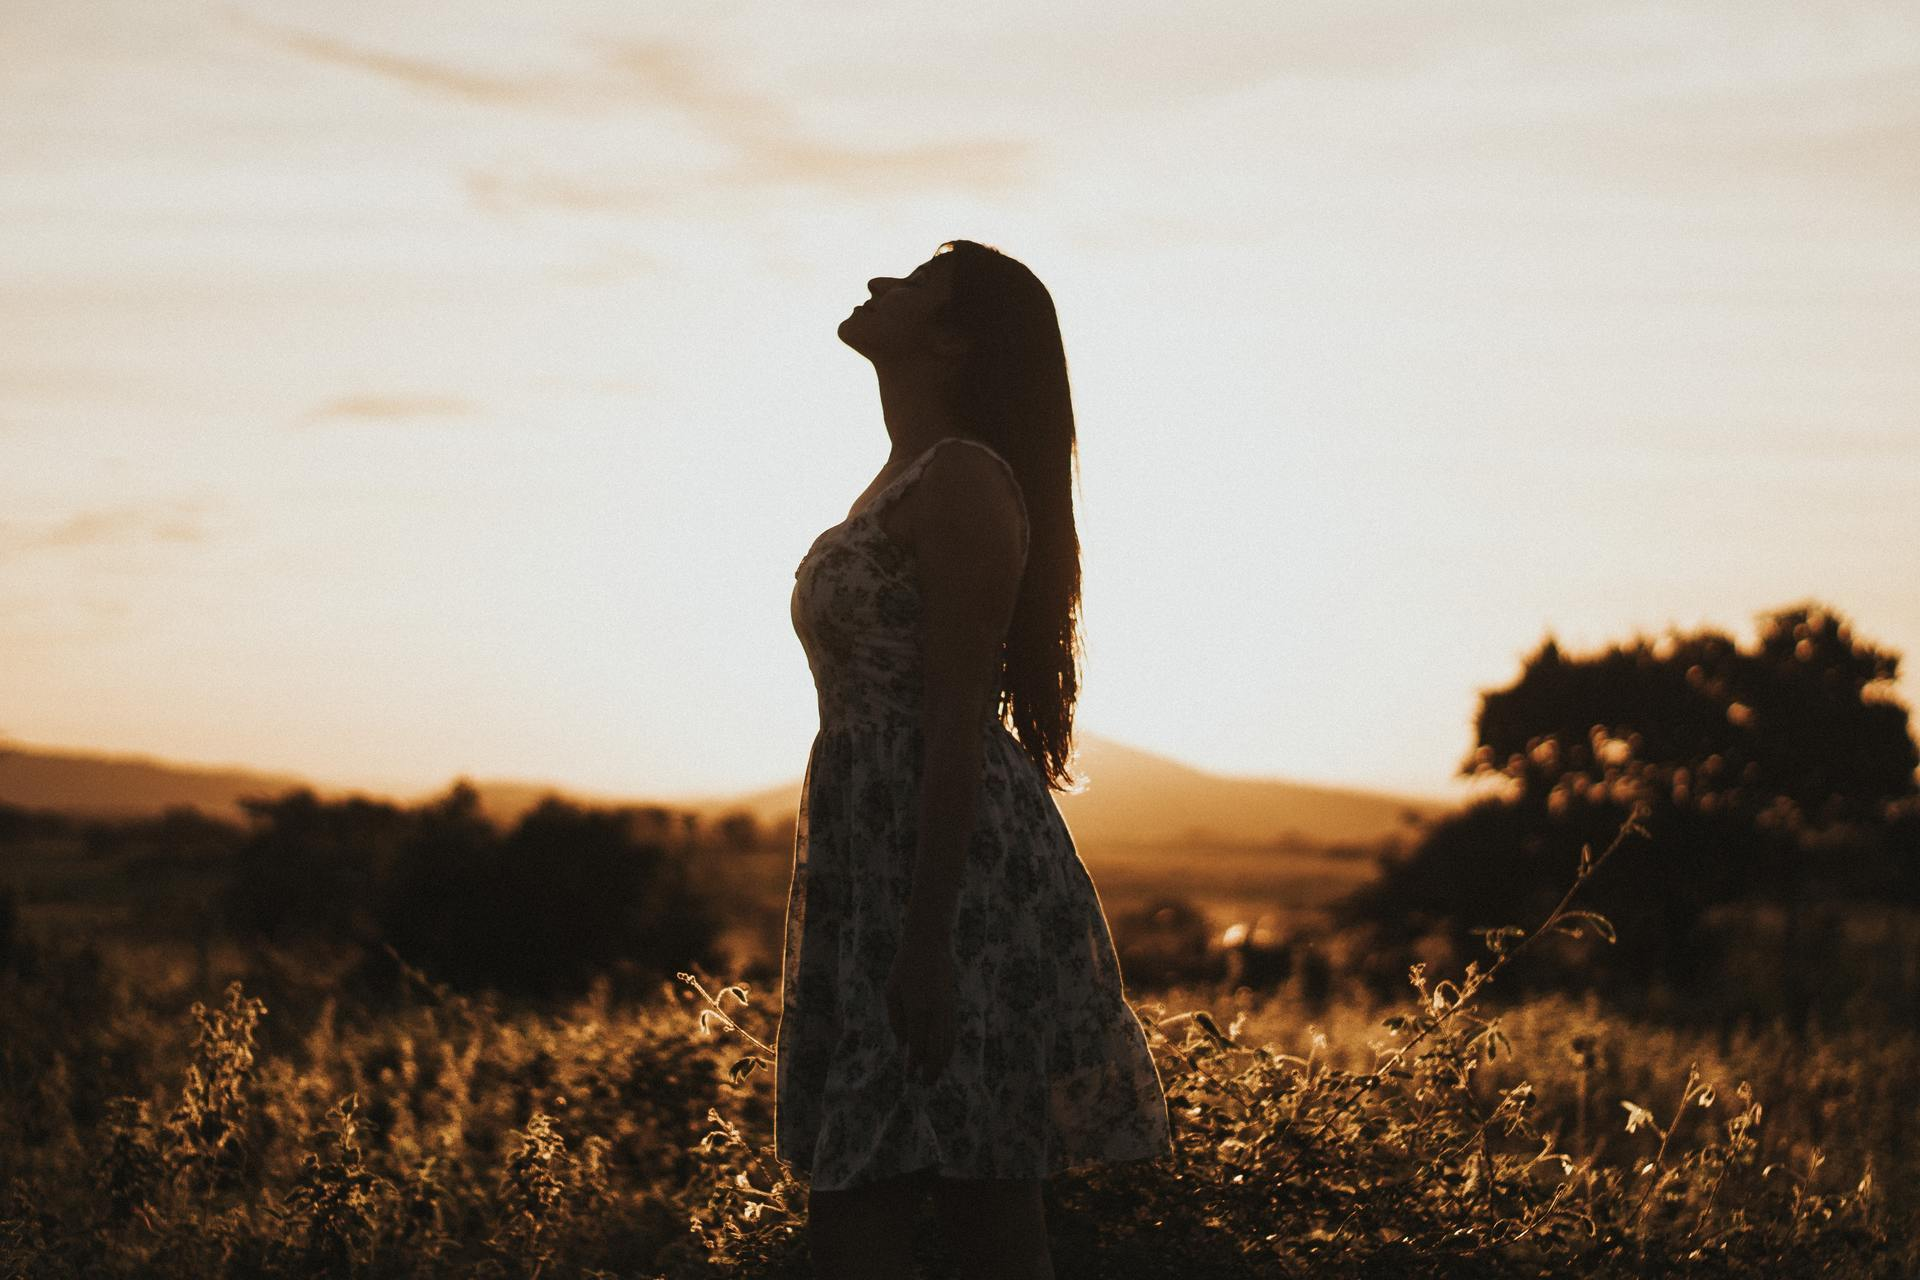 photo-of-woman-standing-in-field-during-dawn-2810209.jpg